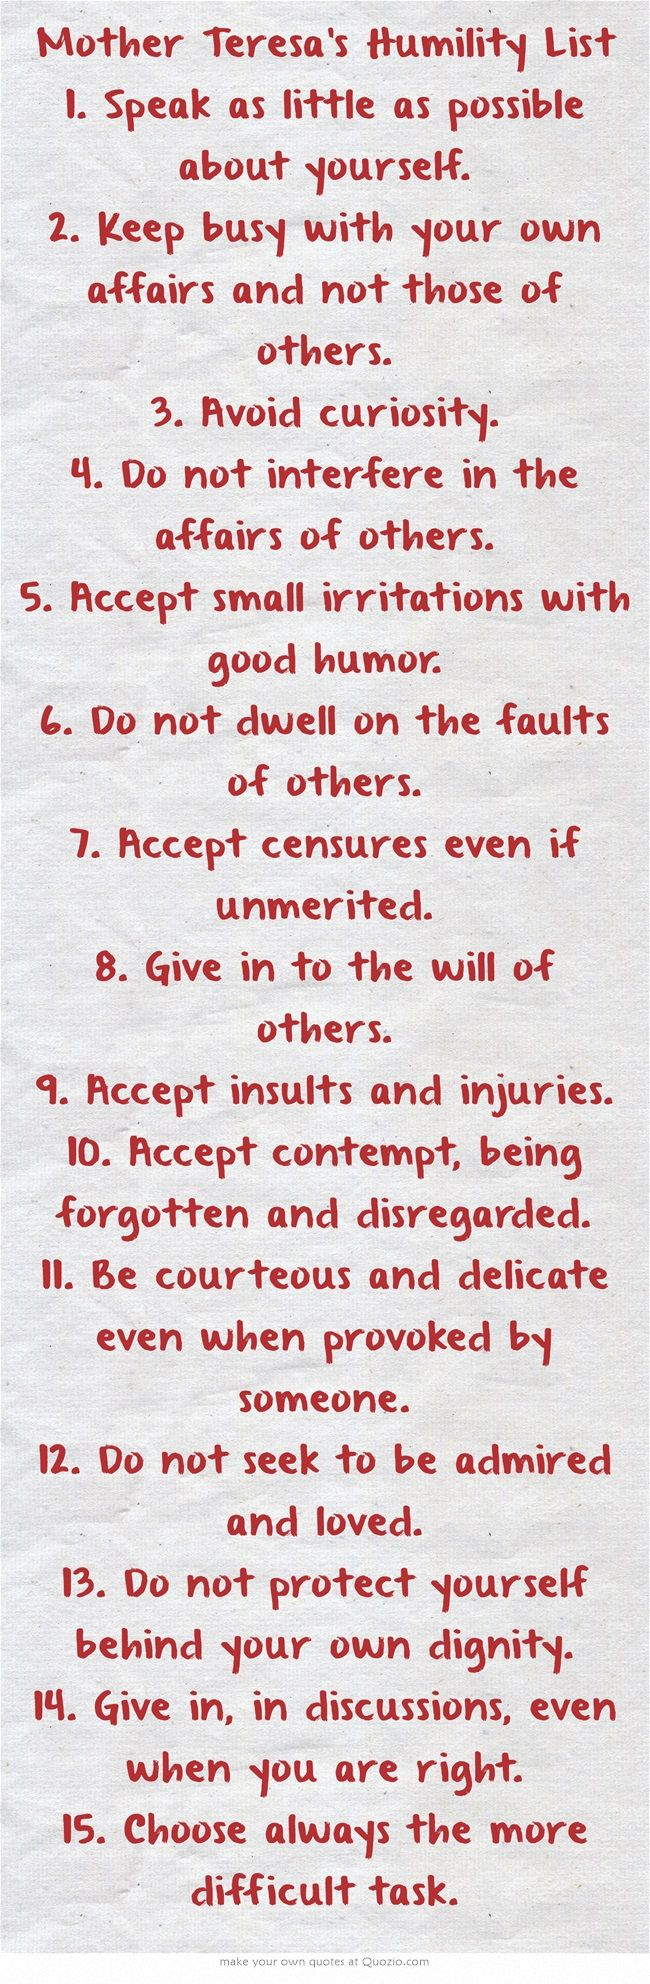 Mother Teresa's Humility List 1. Speak as little as possible about yourself. 2. Keep busy with your own affairs and not those of others. 3. Avoid curiosity. 4. Do not interfere in the affairs of others. 5. Accept small irritations with good humor. 6. Do not dwell on the faults of others. 7. Accept censures even if unmerited. 8. Give in to the will of others. 9. Accept insults and injuries. 10. Accept contempt, being forgotten and disregarded. 11. Be courteous and delicate...